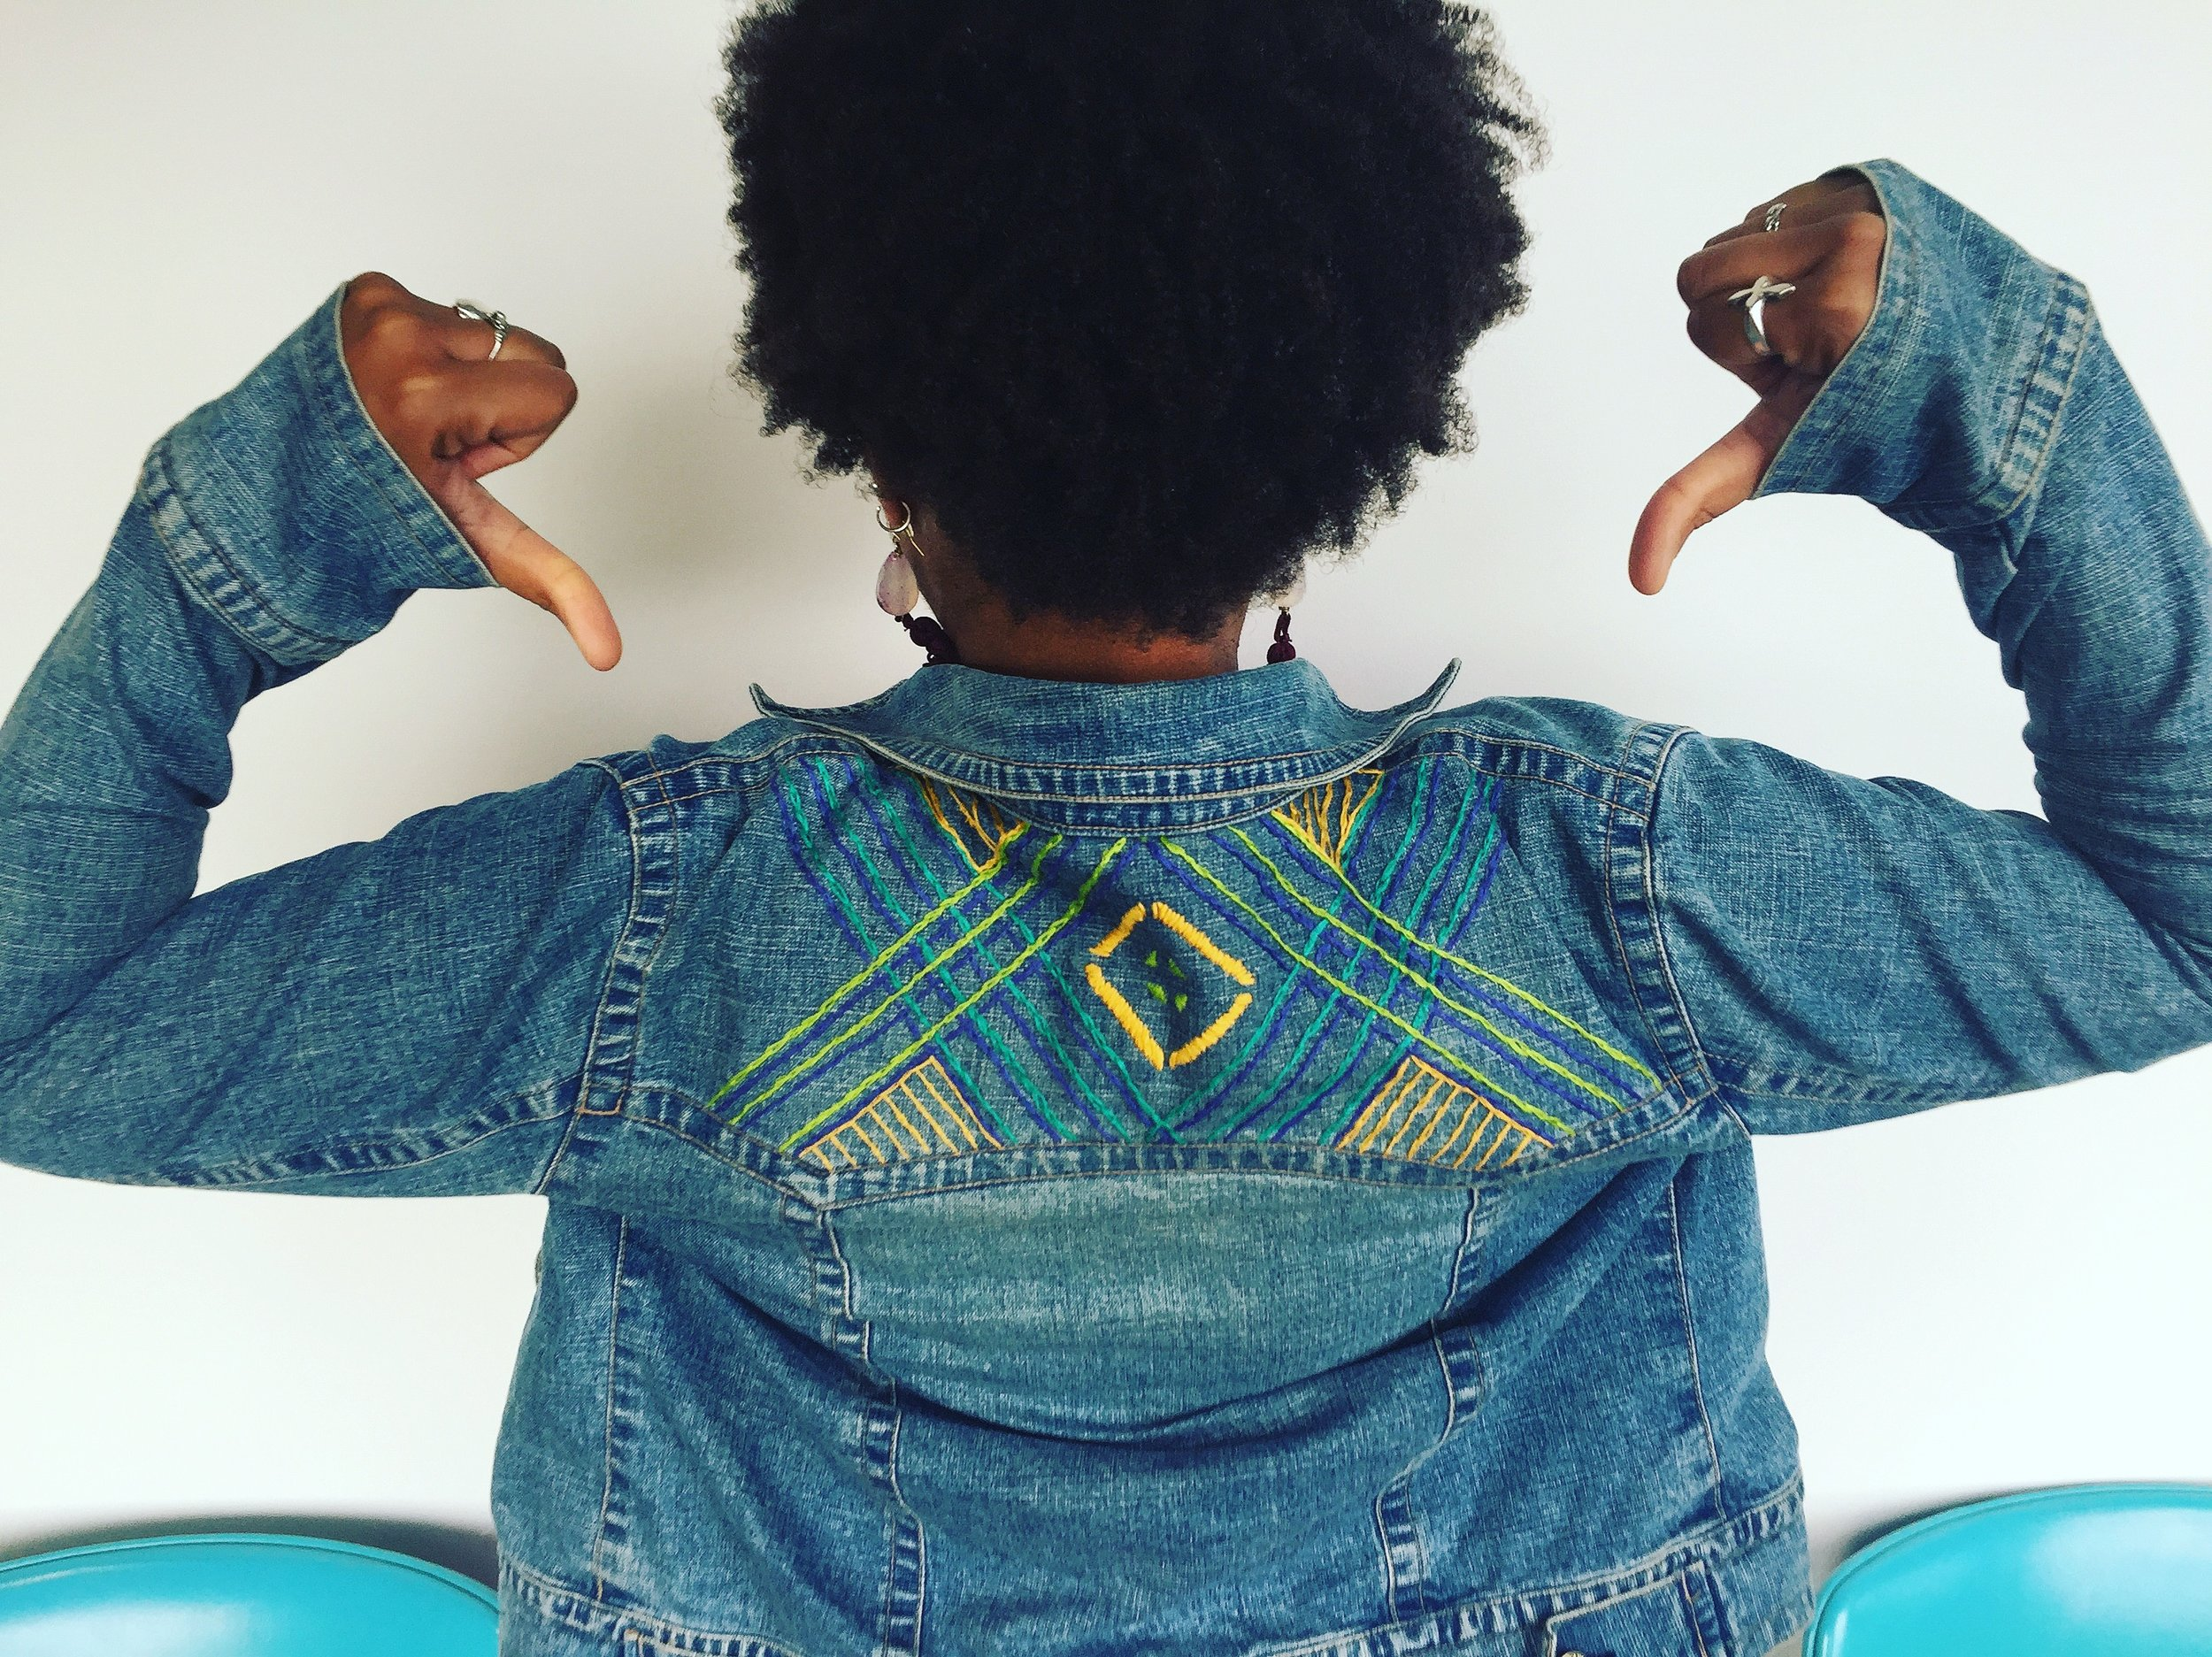 The denim jacket that I hand embroidered with a geometric design is one of my favorite pieces of 2017. And the earrings are my creation too.